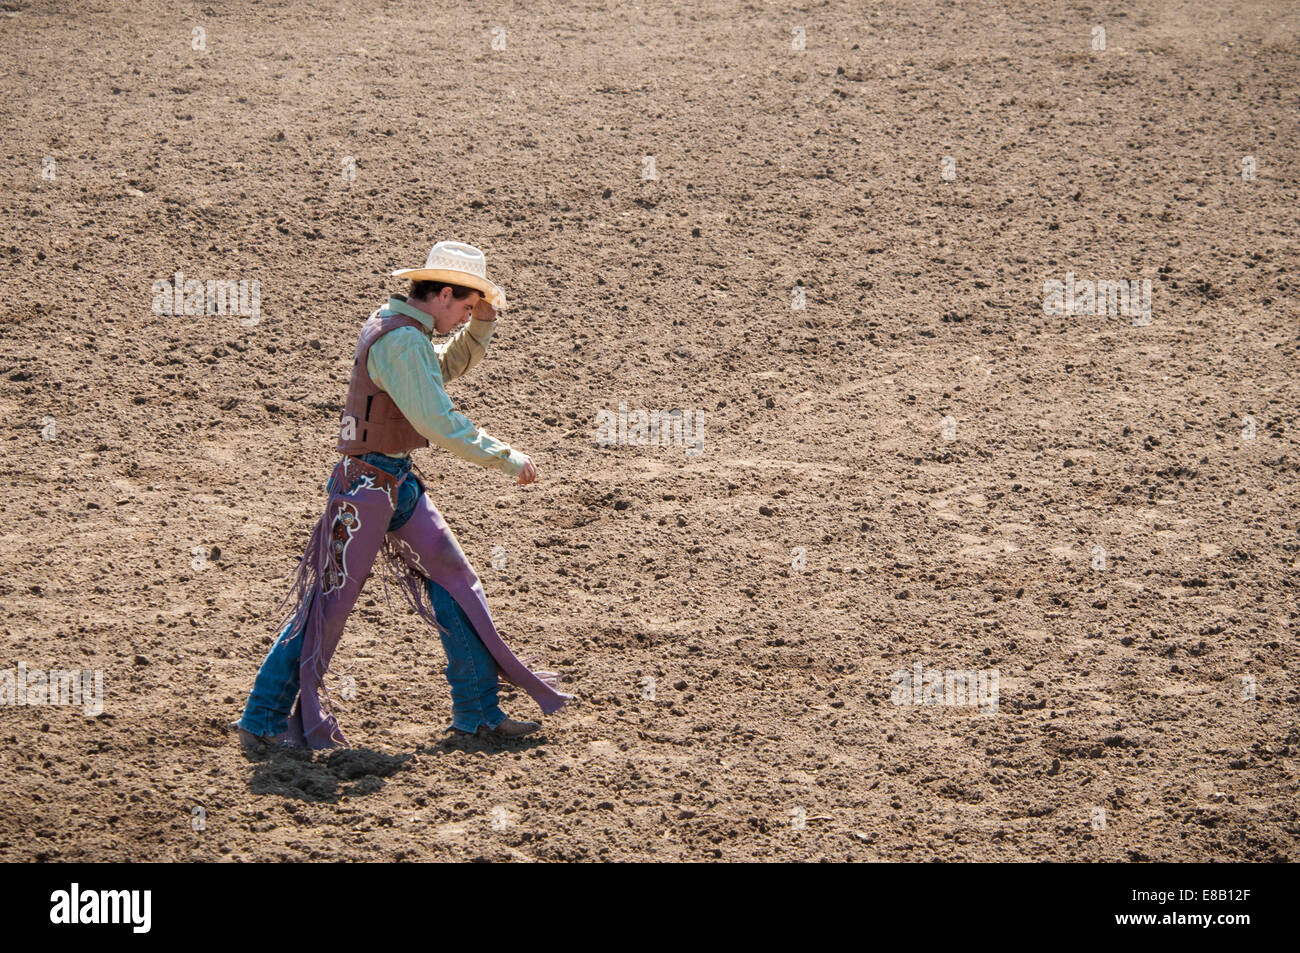 rodeo-cowboy-walking-across-the-dirt-are